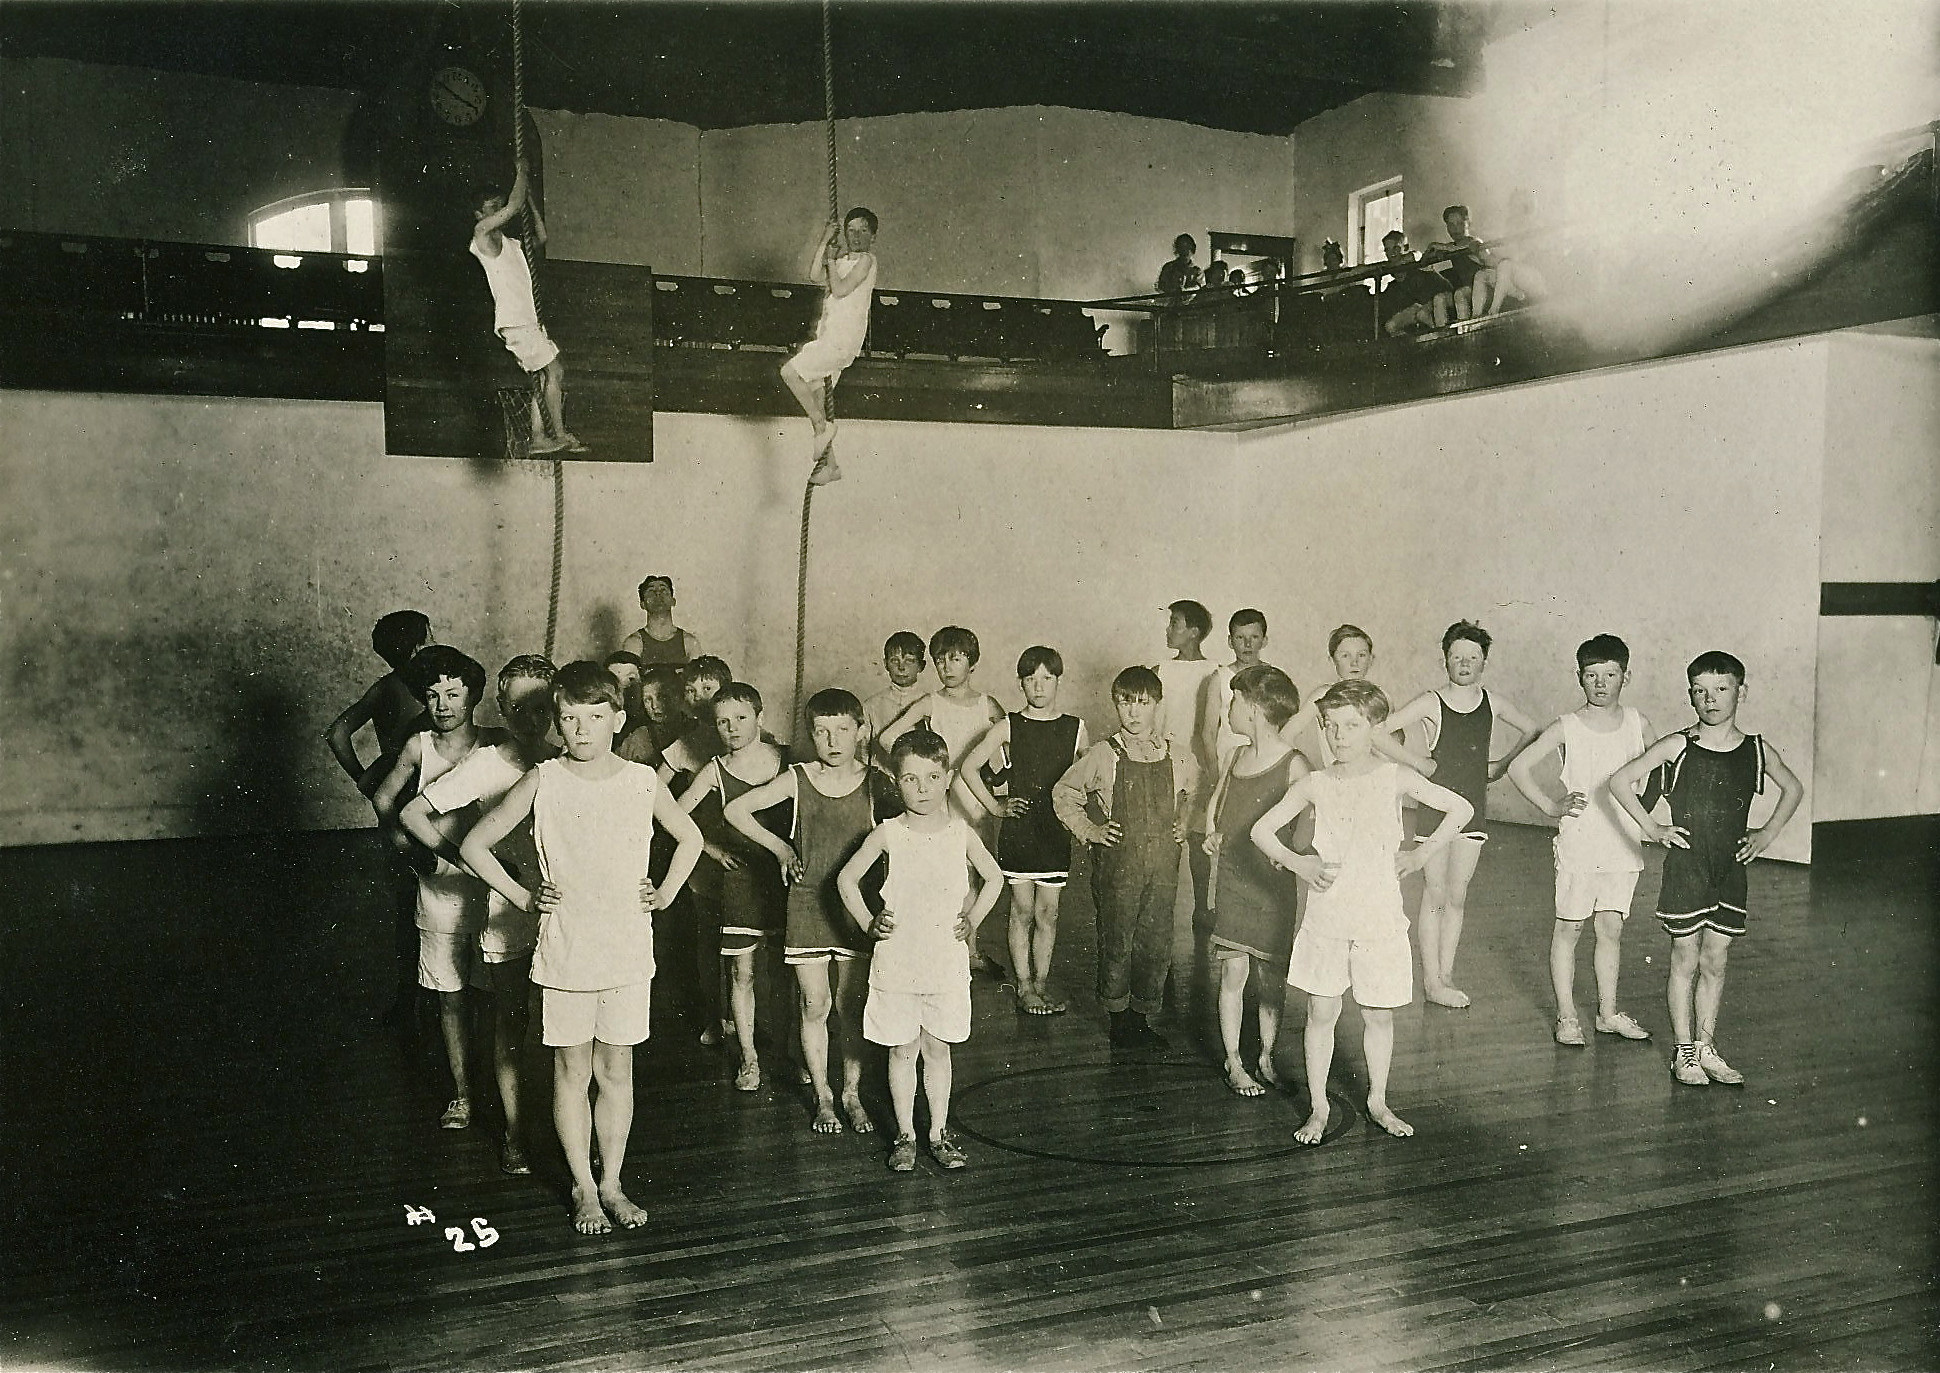 Eatonville to Rainier » Eatonville Gym — Then and Now